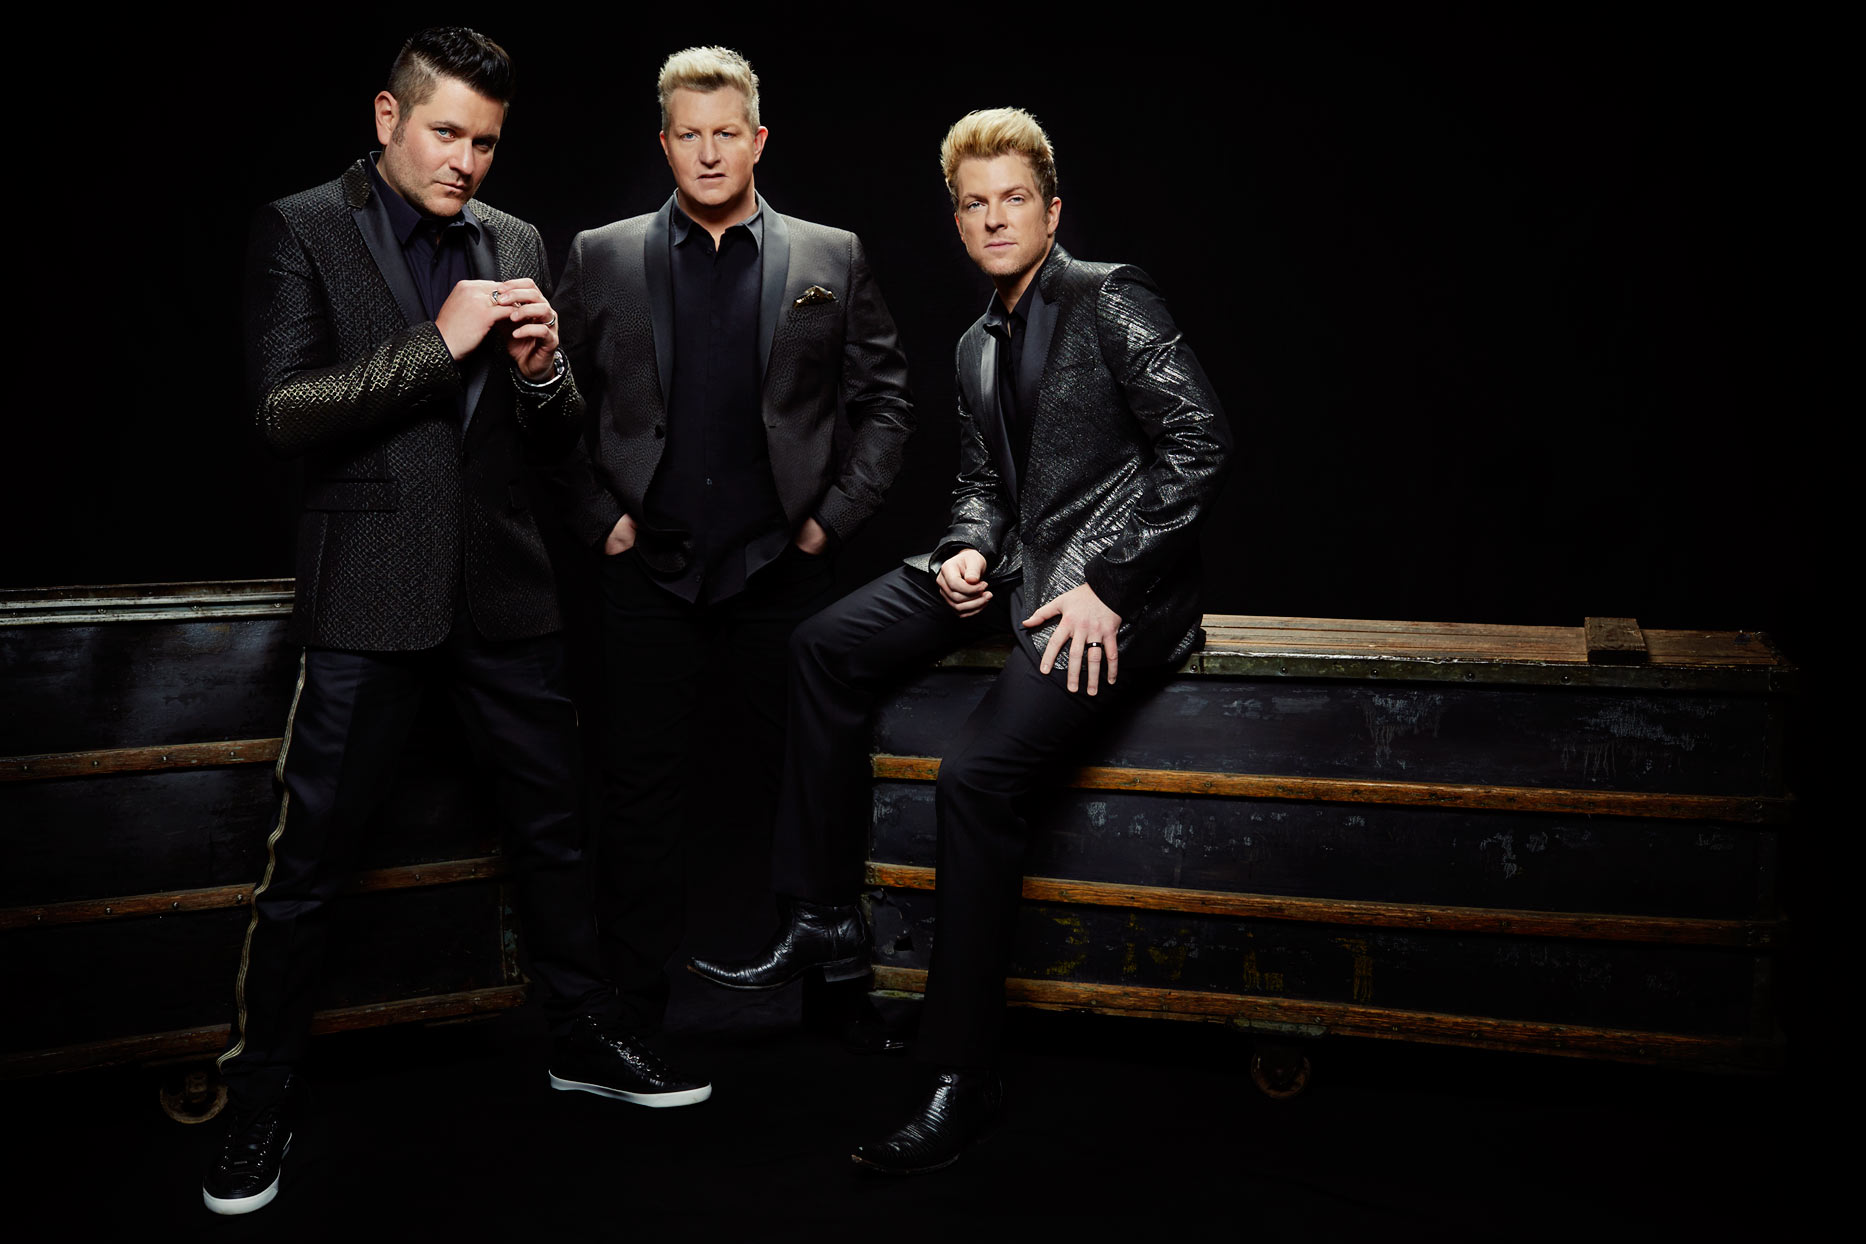 Mark DeLong - Celebrity Photographer - 3 Musicians in black suits relaxing together.